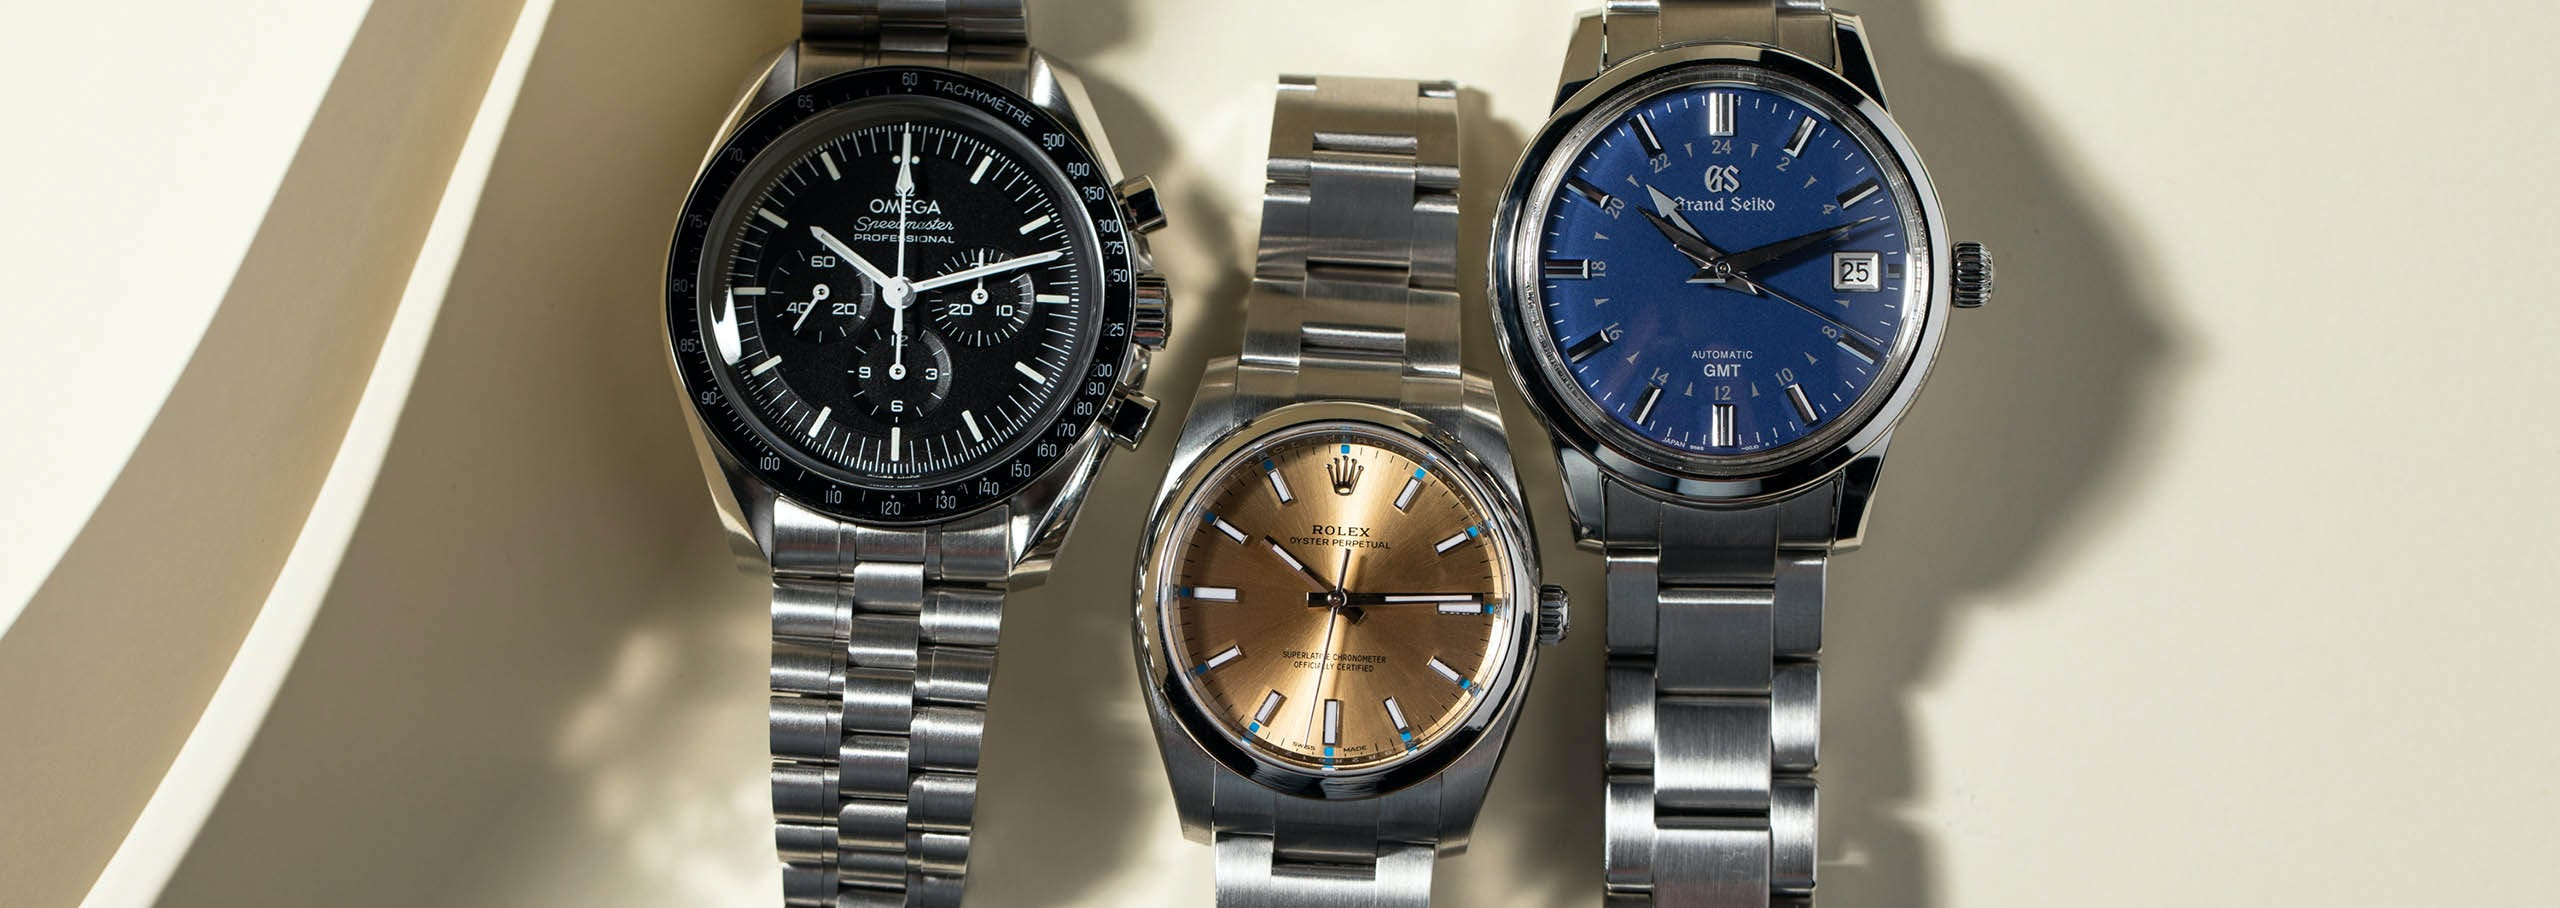 How to Build Your Watch Collection: Advice From a Pro